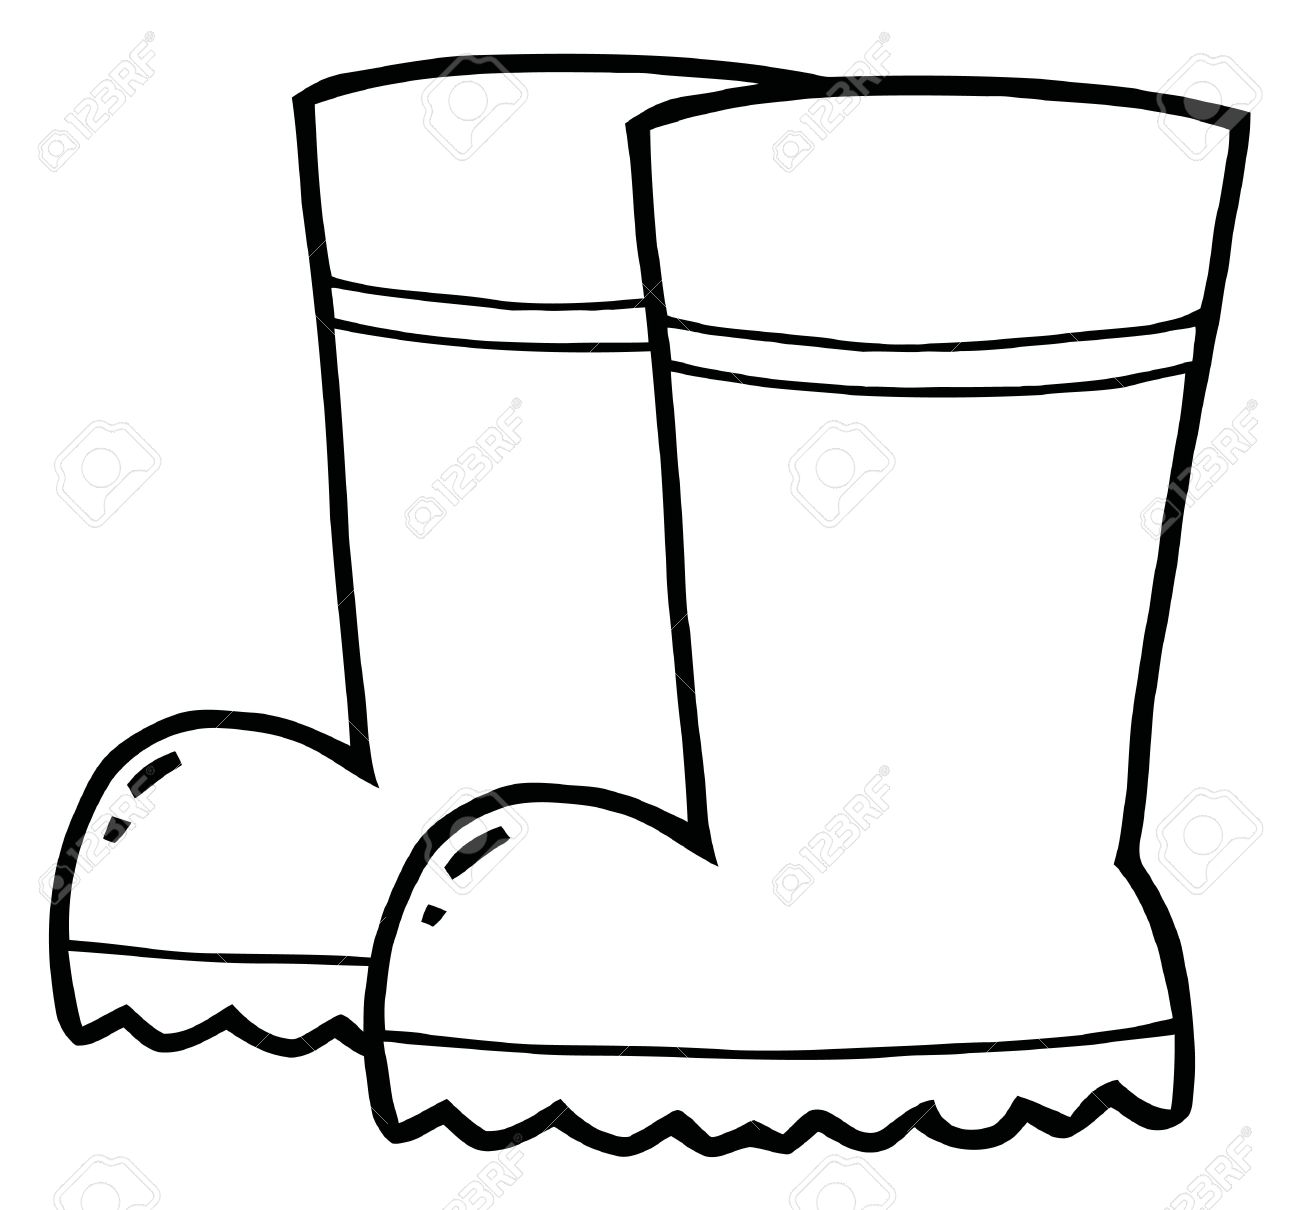 Coloring Page Outline Of A Pair Of Gardening Rubber Boots Royalty ...